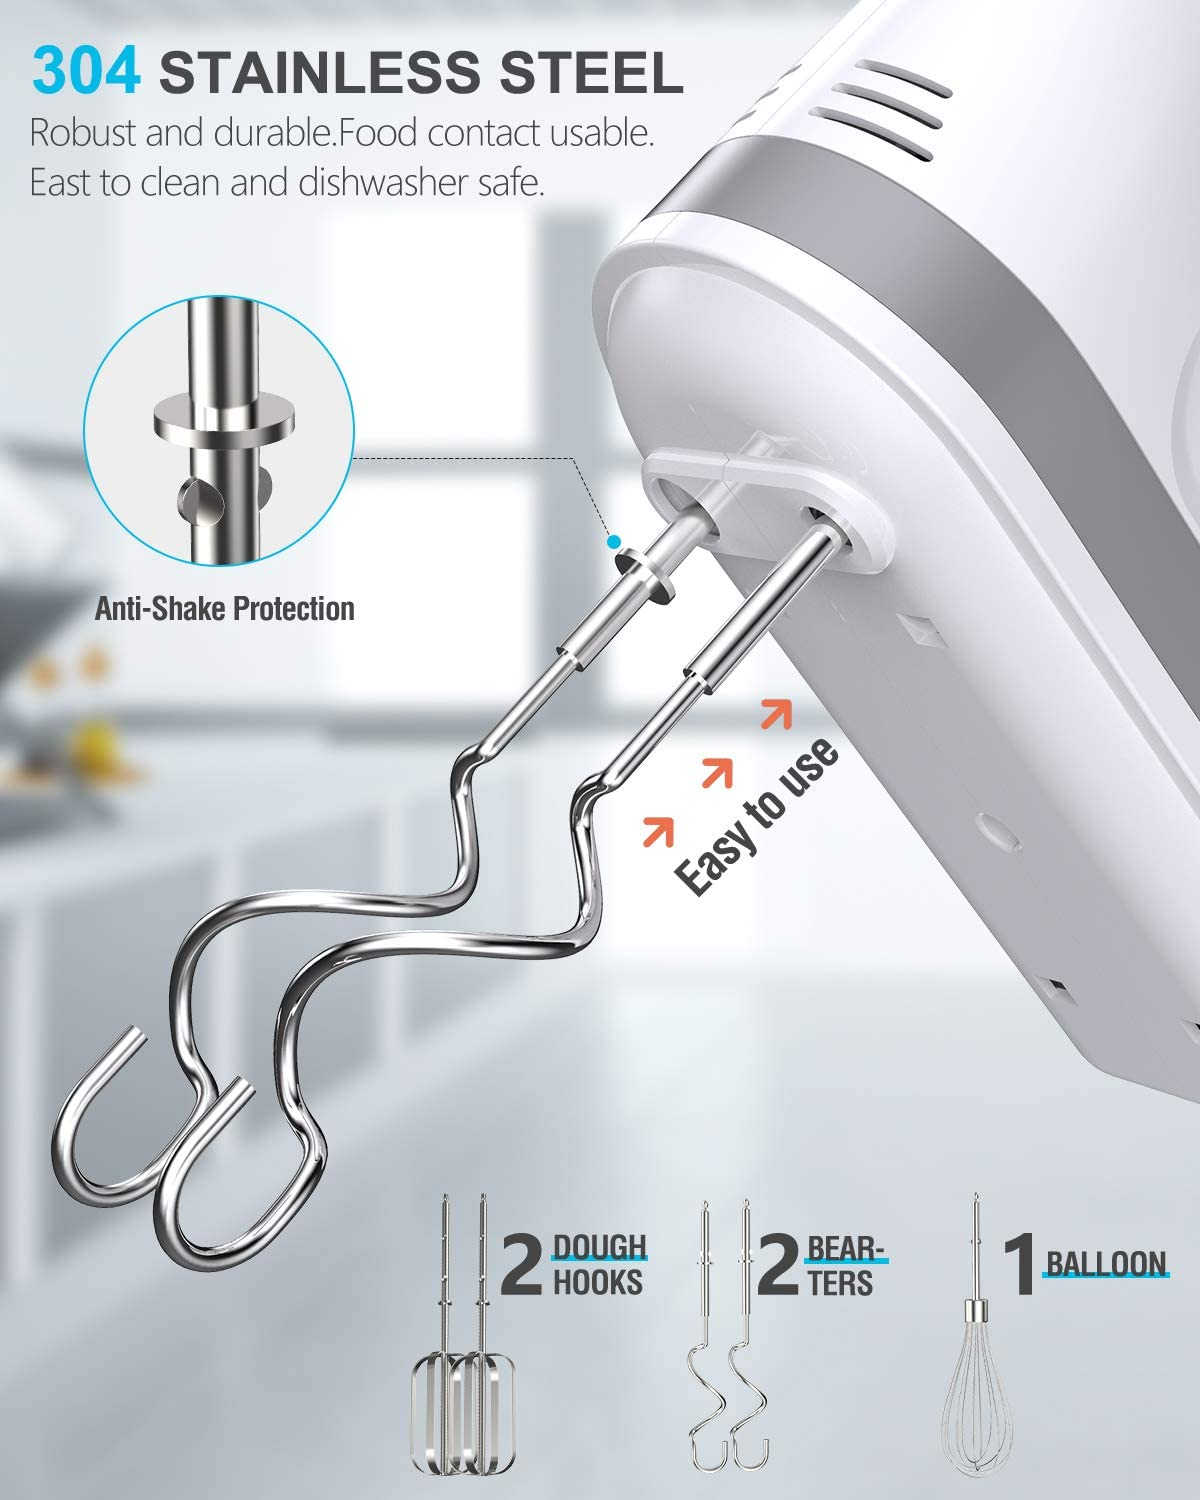 Cakes and Dough Batters Brownies 5 Speed 400W Turbo with 5 Stainless Steel Accessories for Easy Whipping Mixing Cookies Liraip Electric Hand Mixer